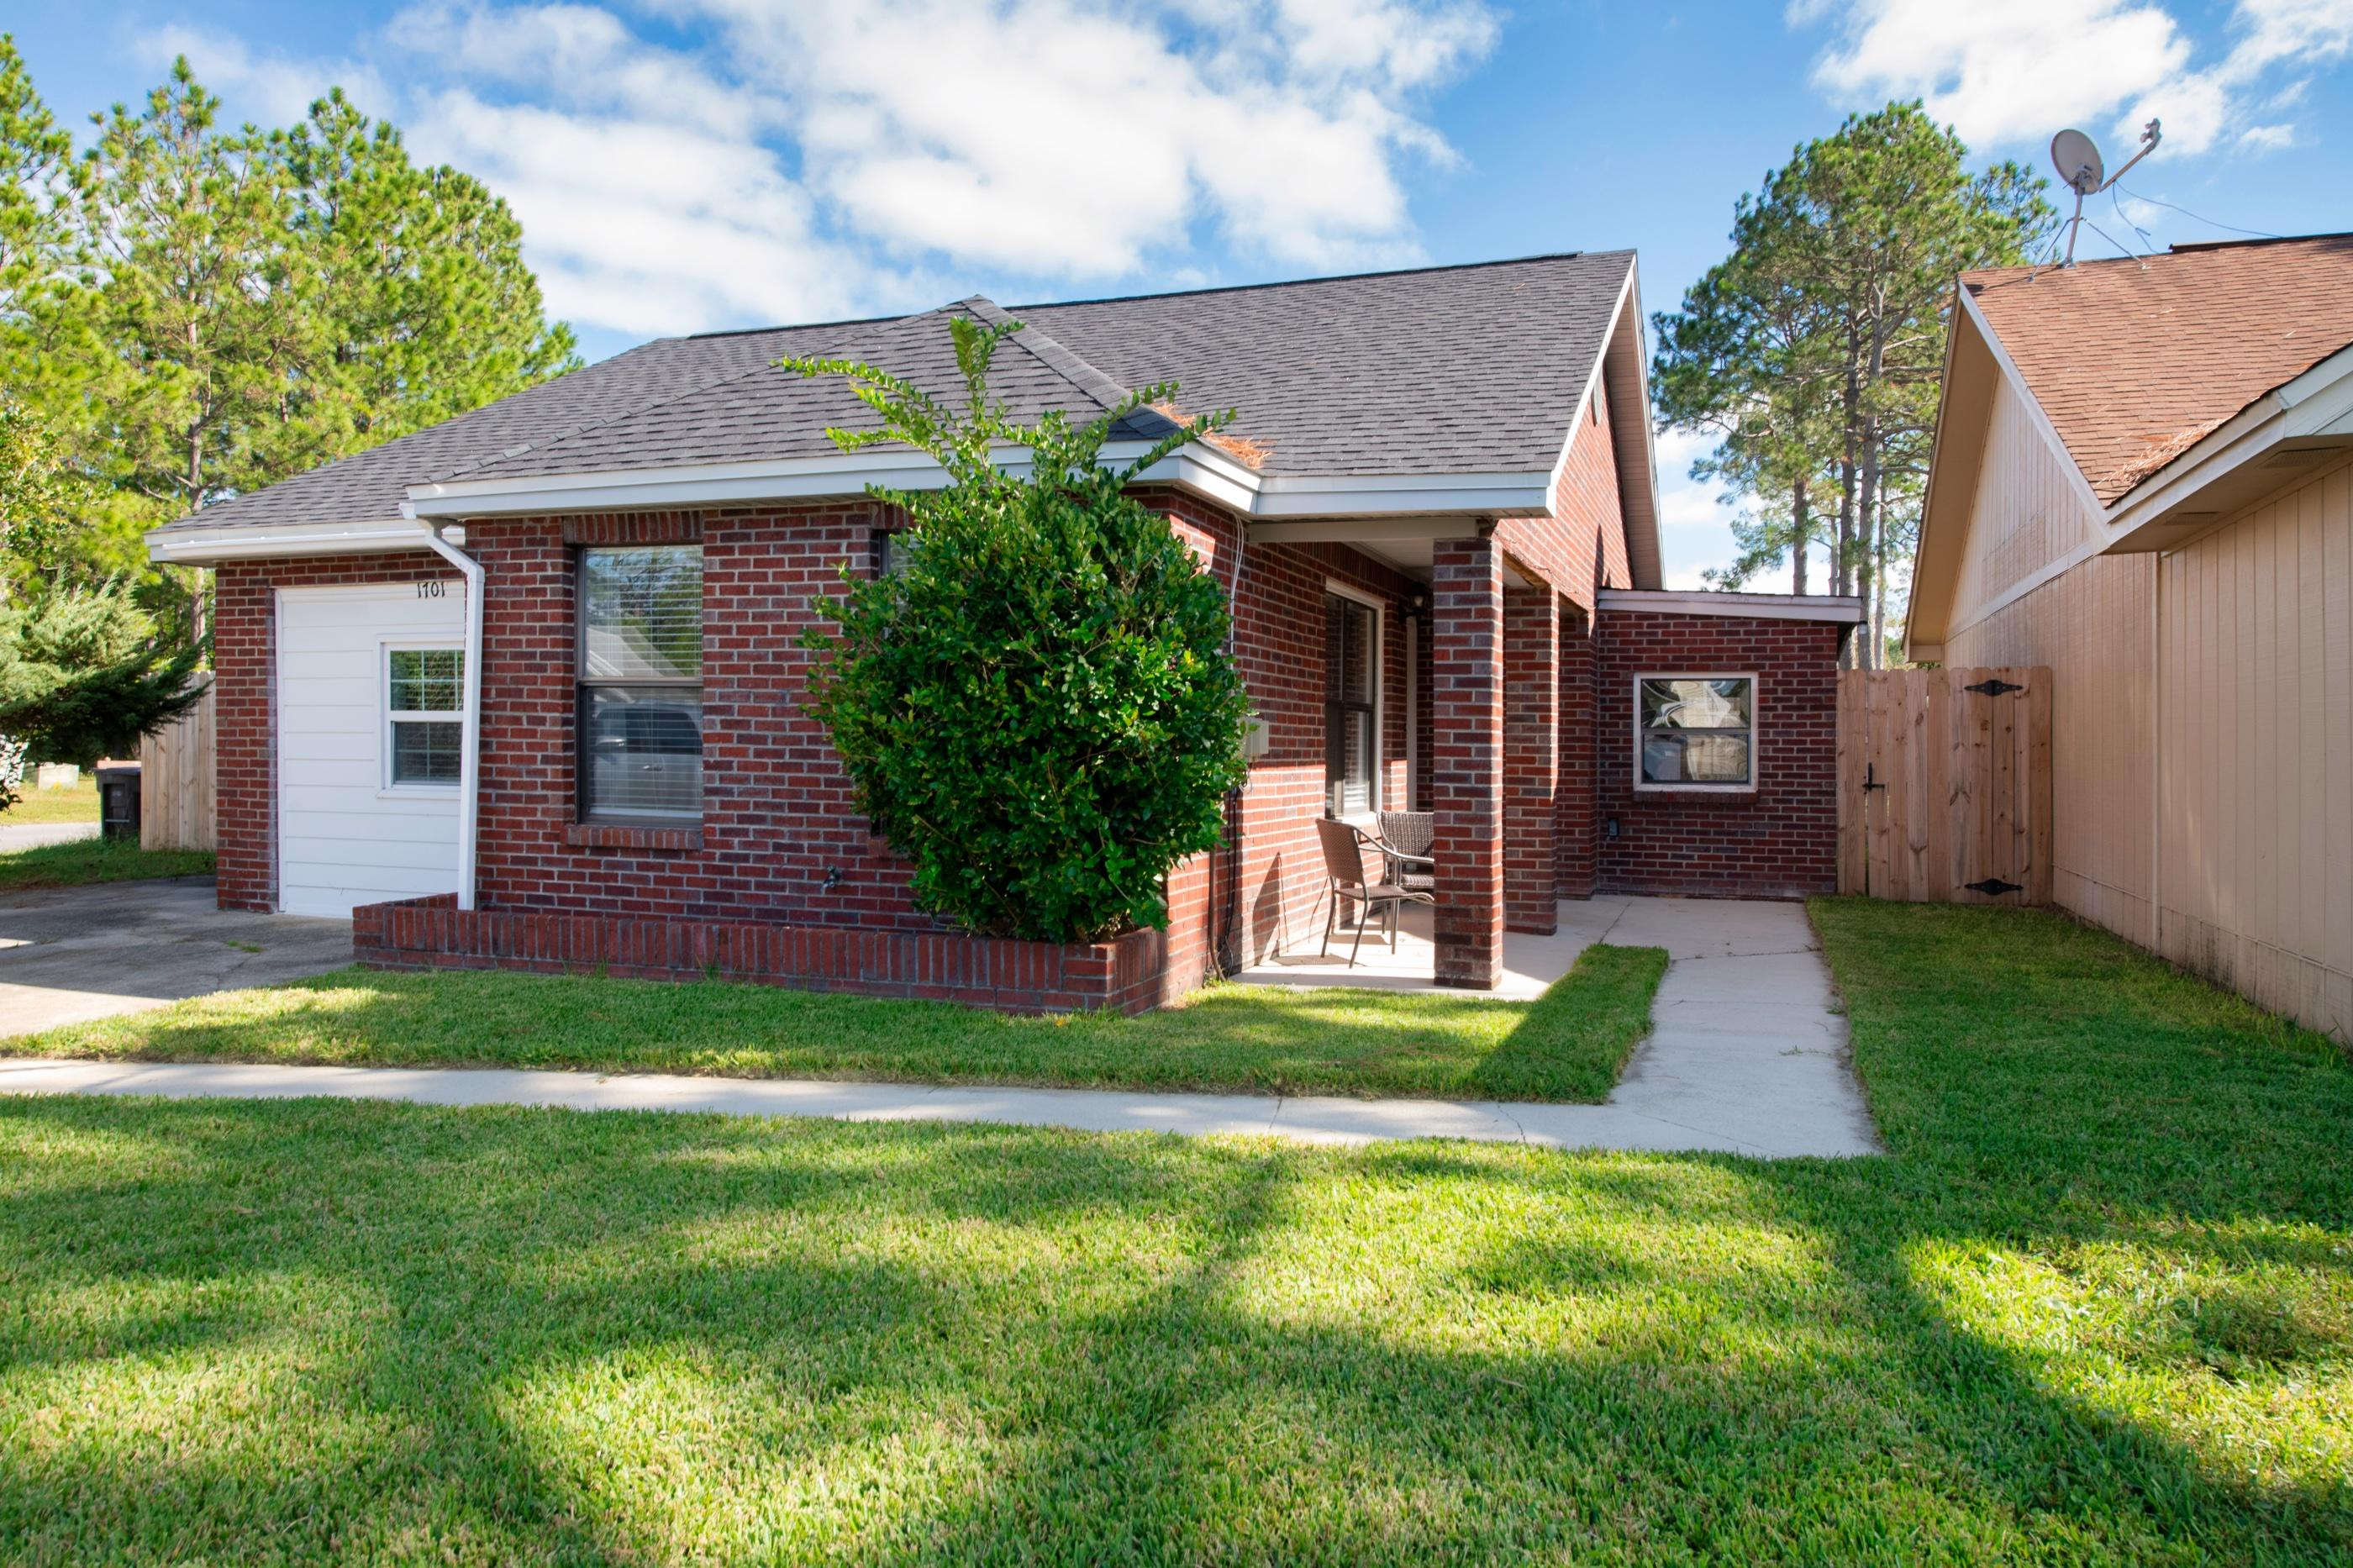 Photo of home for sale at 1701 Bennetts End, Fort Walton Beach FL